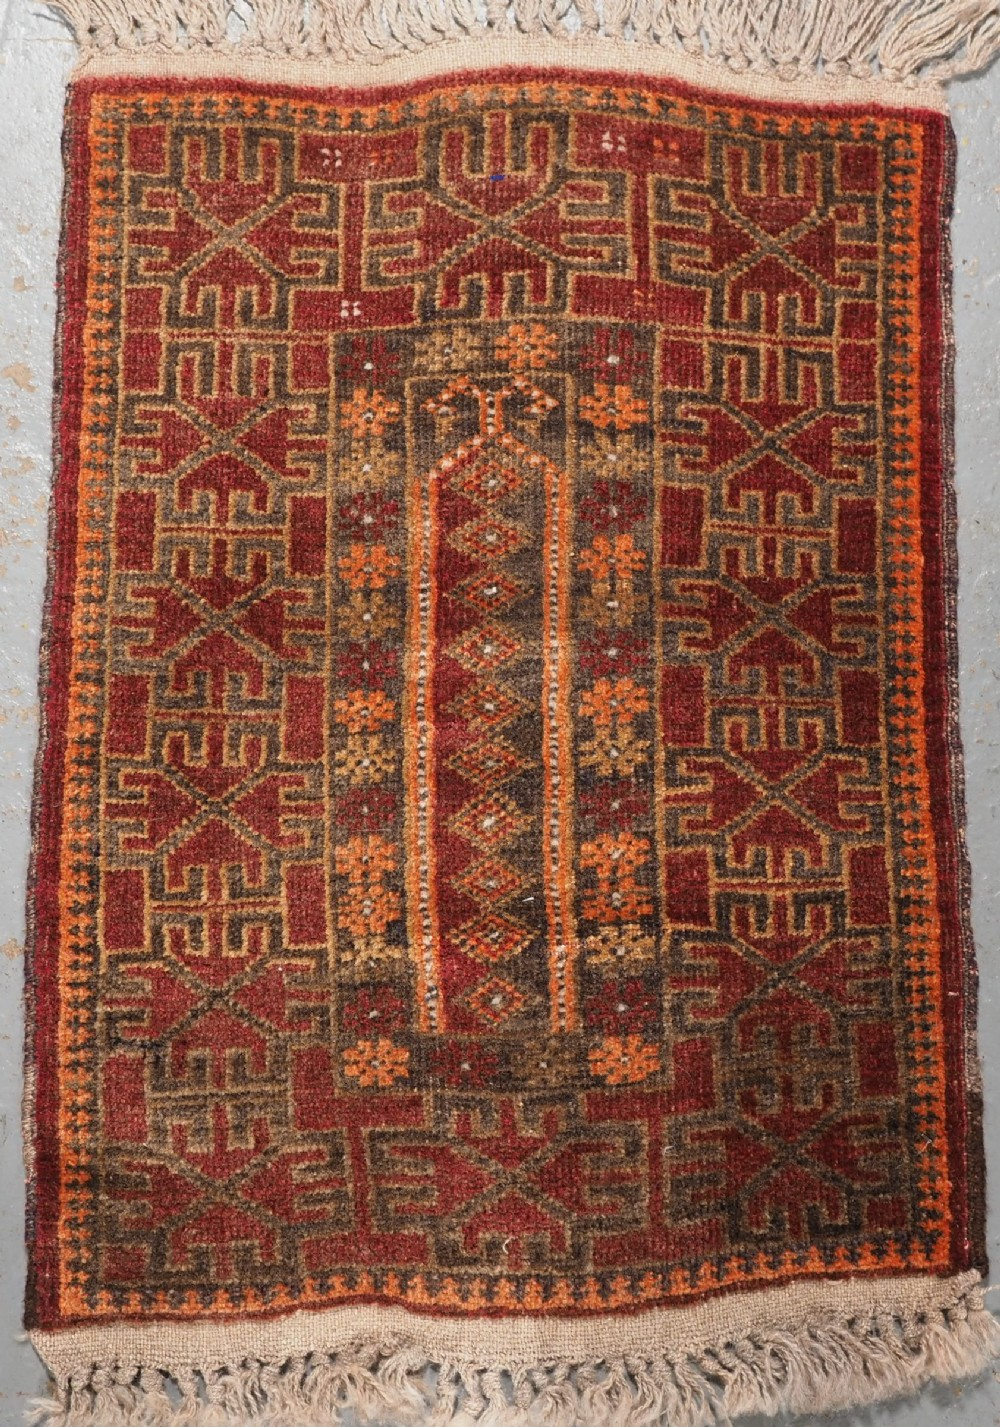 old afghan prayer rug very small size for a child circa 1920